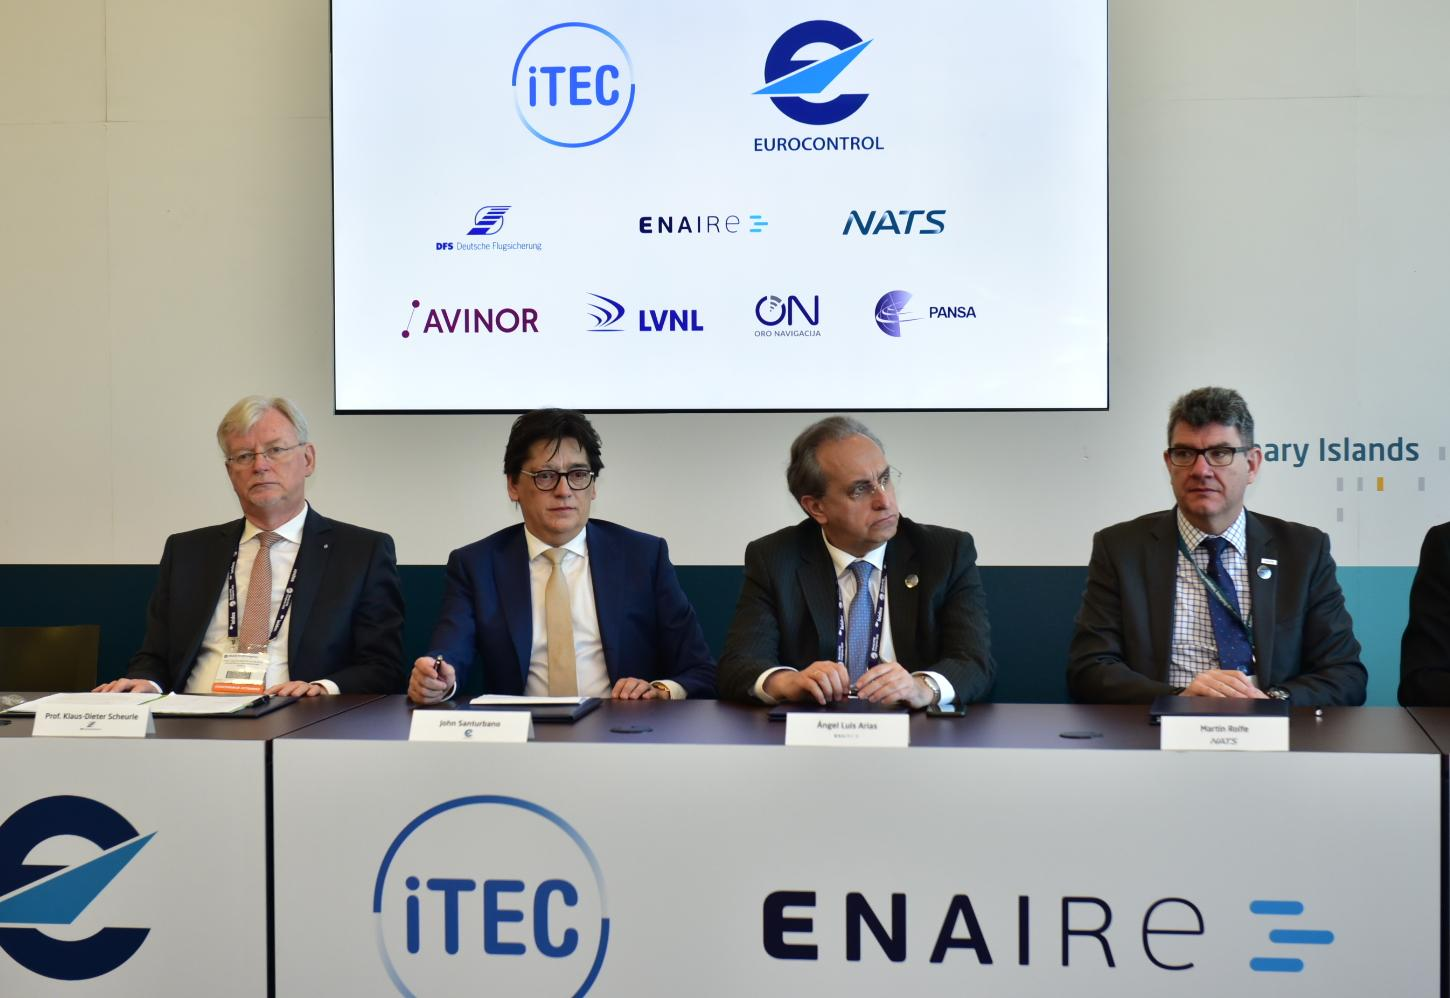 iTEC partners and EUROCONTROL to jointly develop interoperability capabilities essential for a Single European Sky